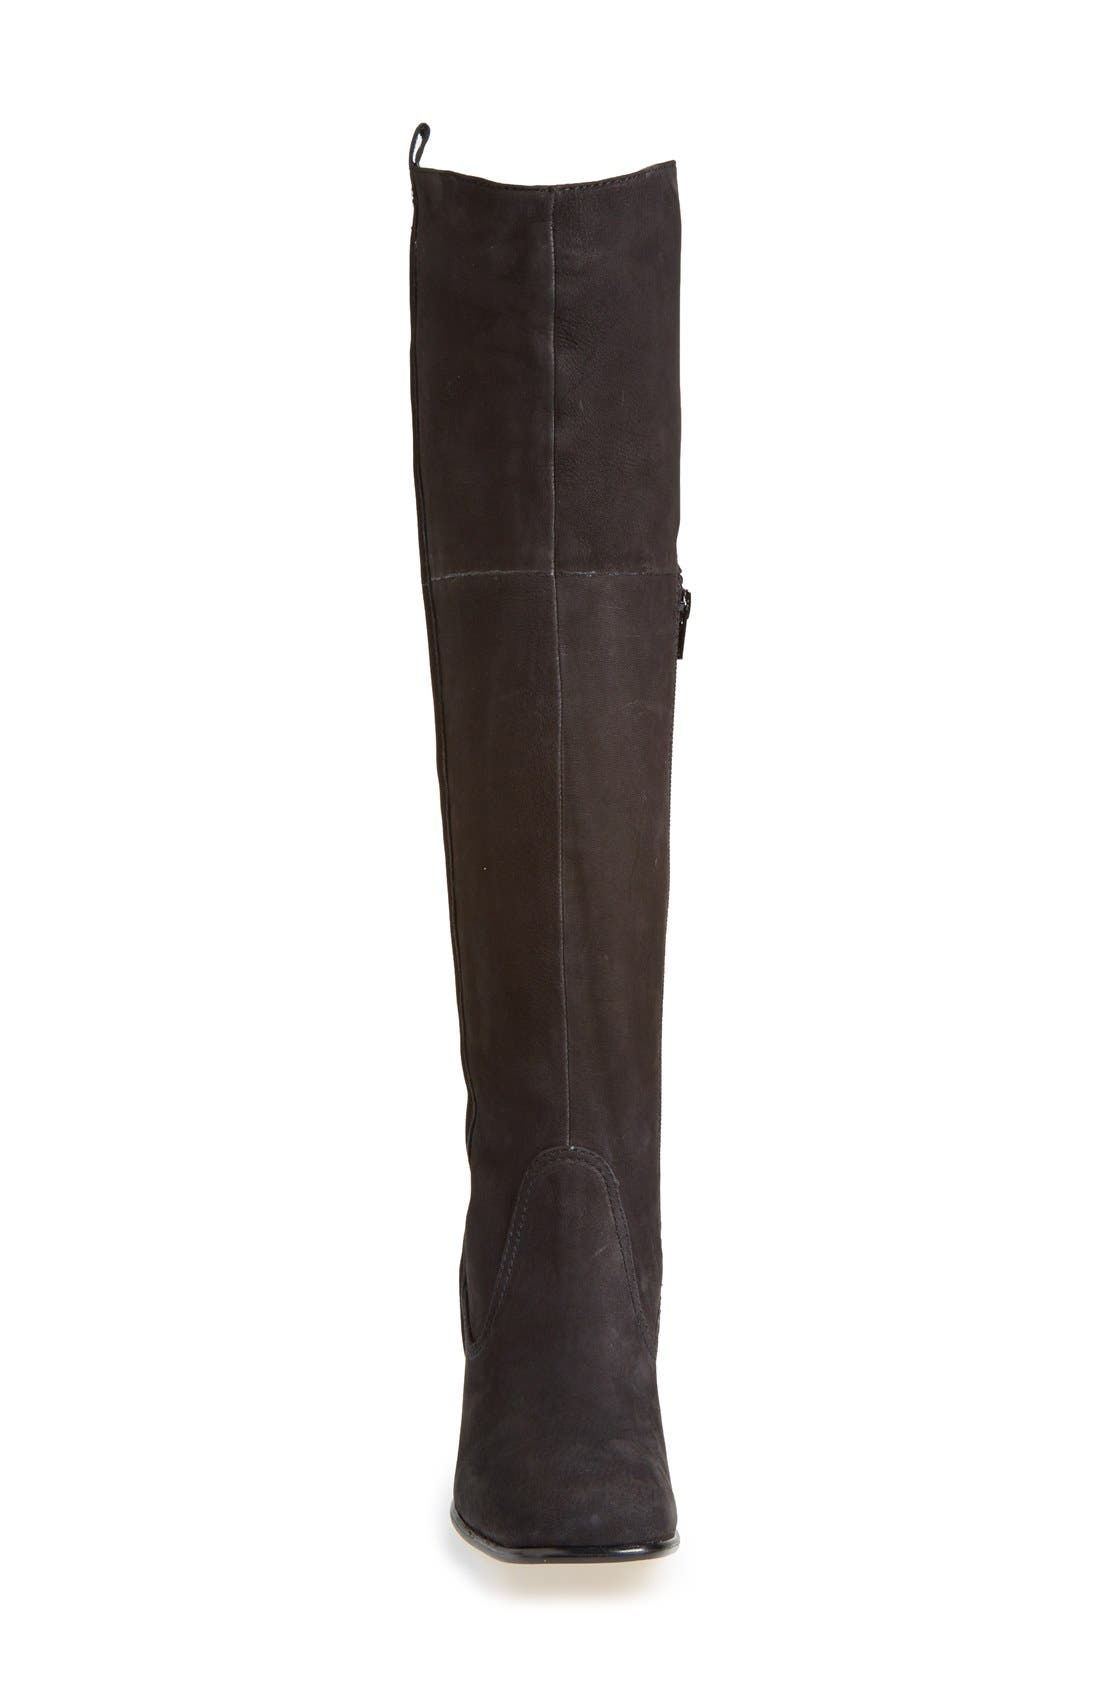 'Ventura' Over the Knee Boot,                             Alternate thumbnail 3, color,                             001